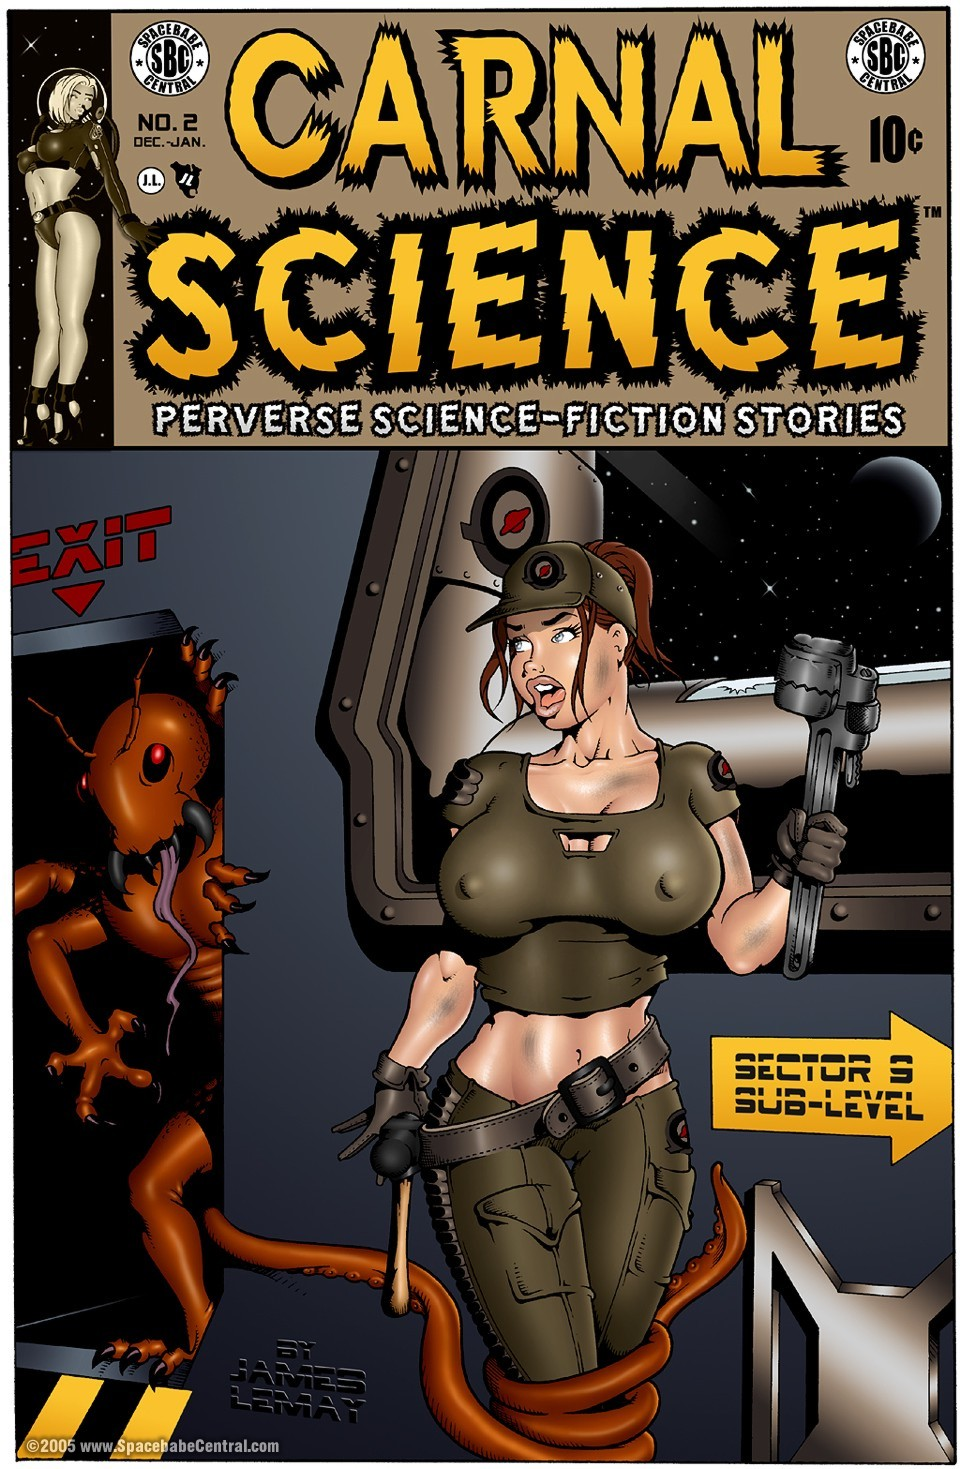 Carnal science 2- James Lemay image 1